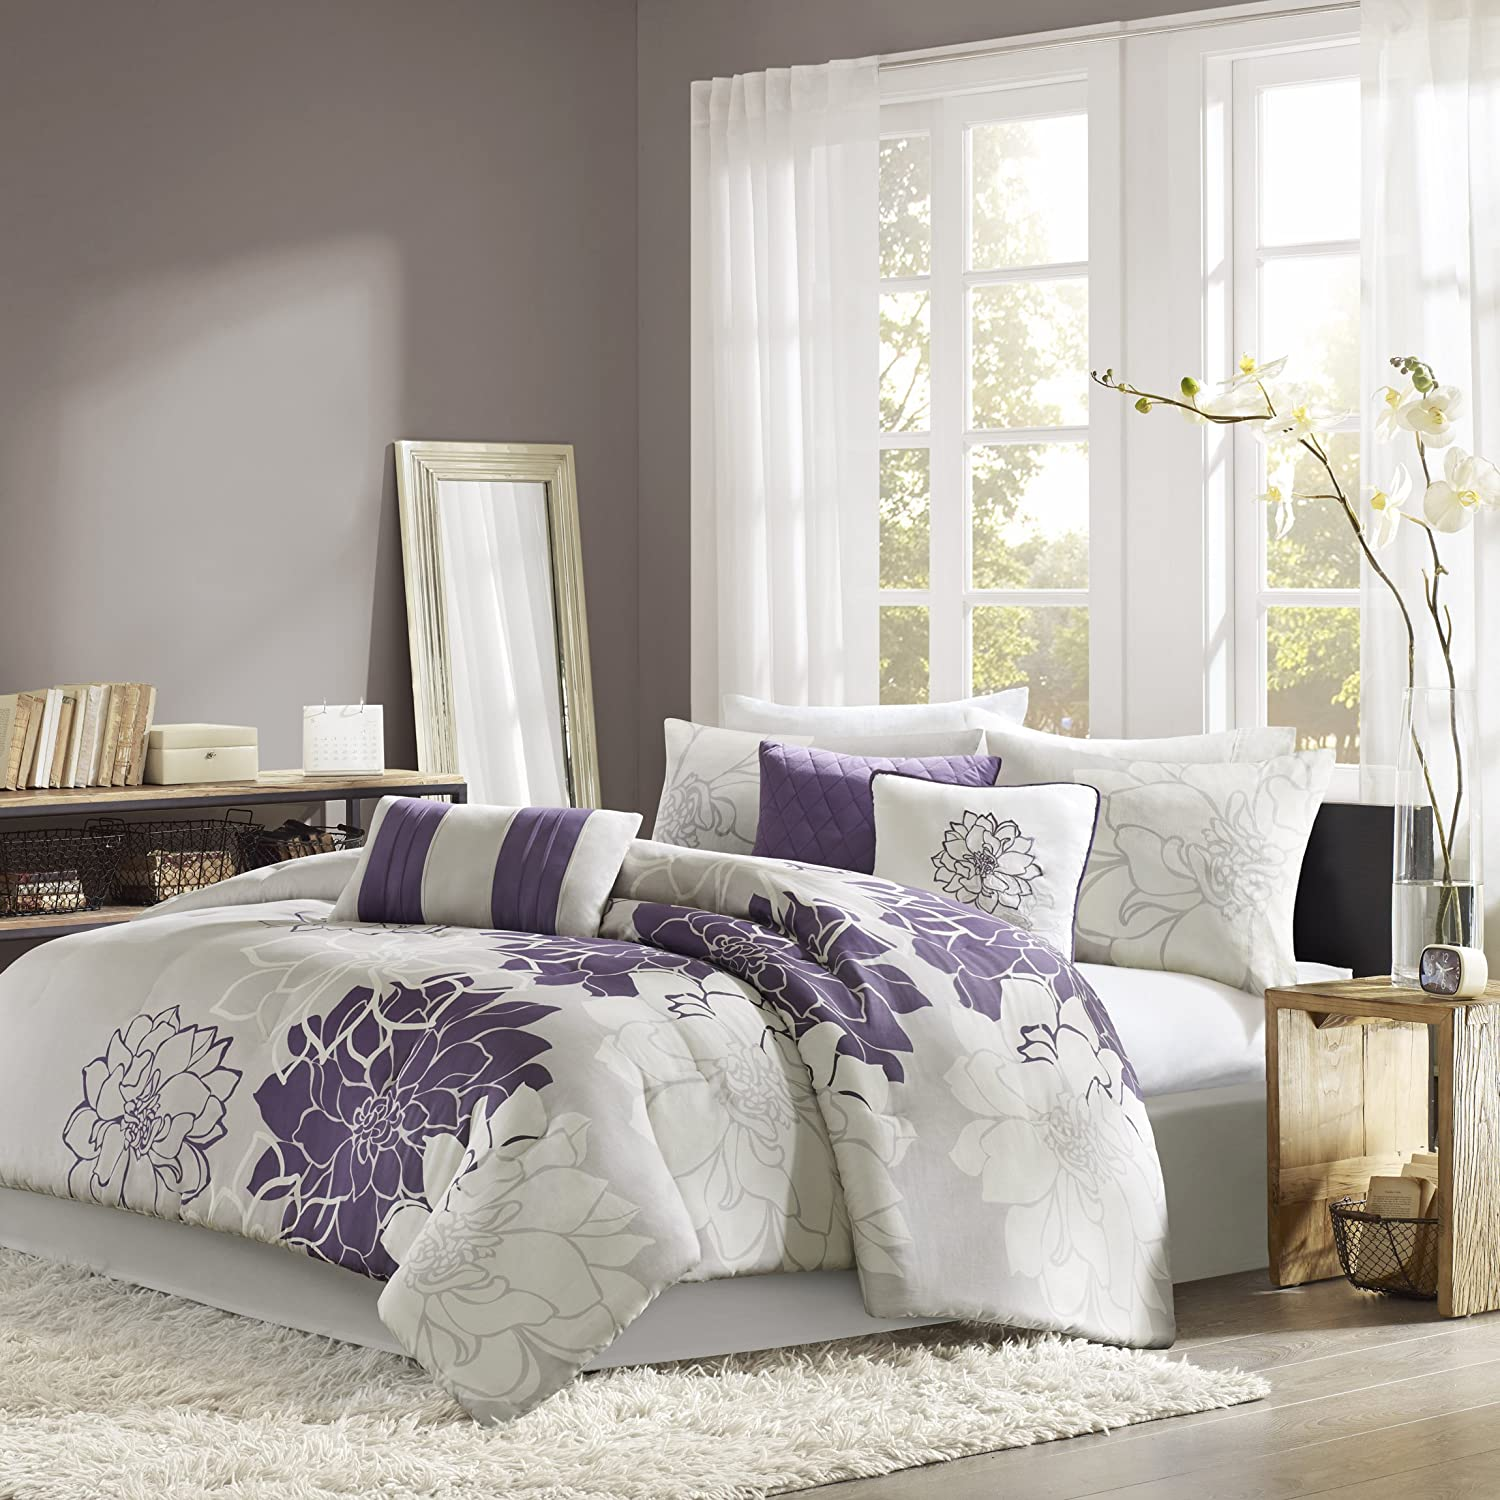 purple queen of lovely color for bed twin bedding bedroom set comforter sets